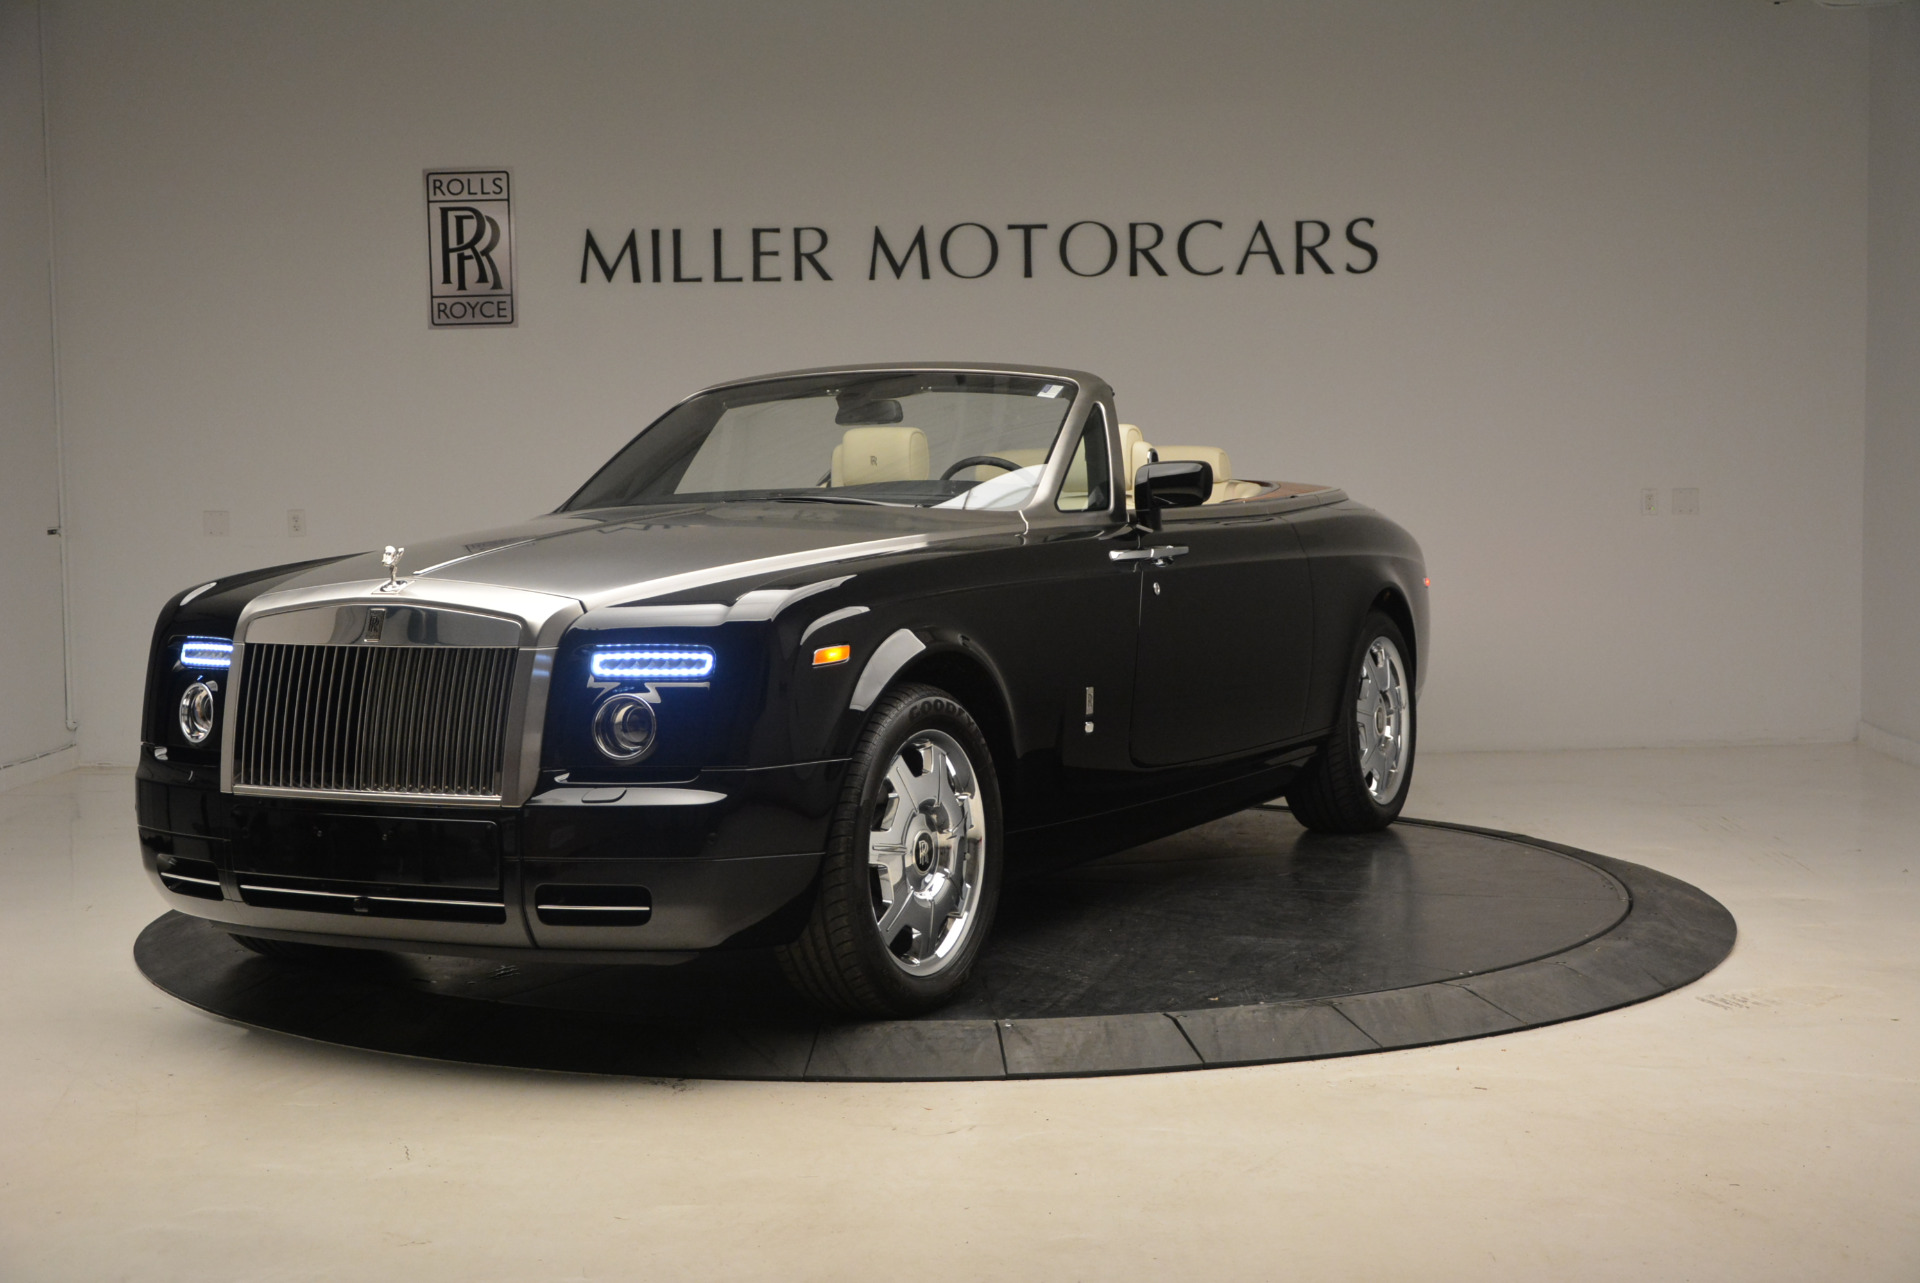 Used 2009 Rolls-Royce Phantom Drophead Coupe for sale Sold at Aston Martin of Greenwich in Greenwich CT 06830 1